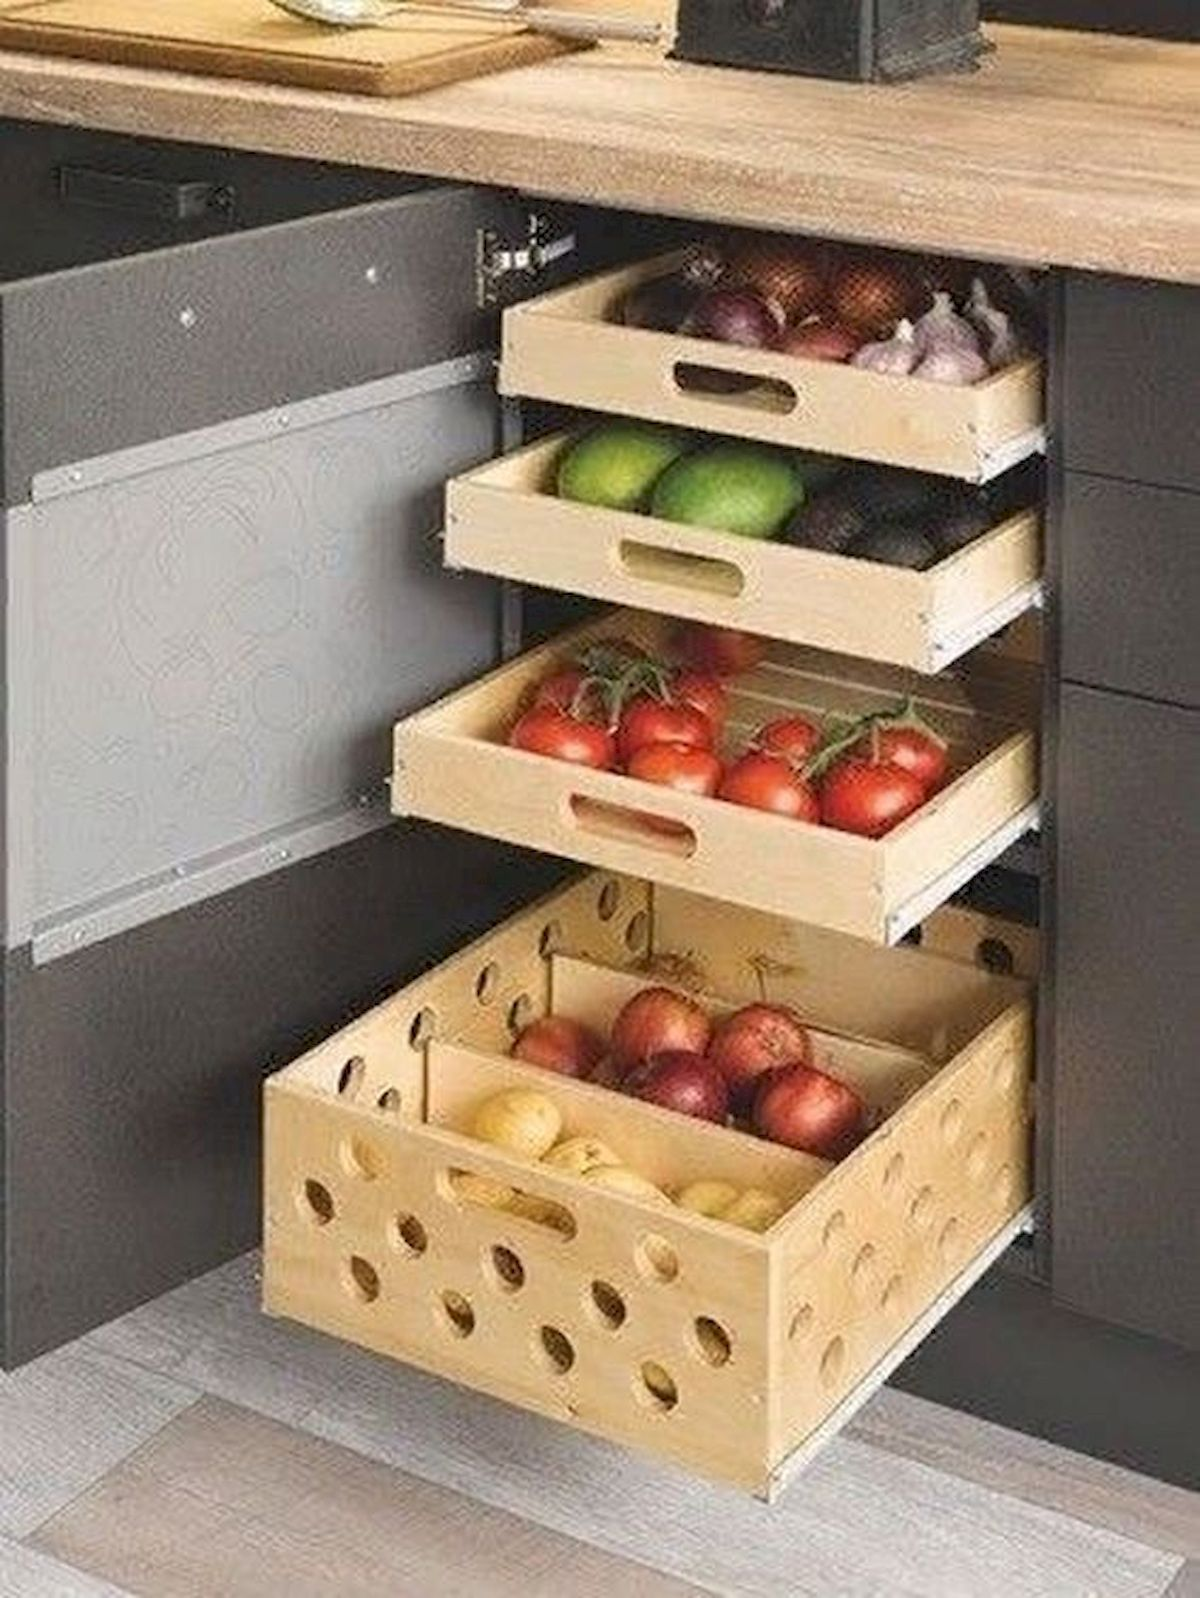 30 Best Fruit And Vegetable Storage Ideas For Your Kitchen Small Kitchen Kitchen Inspirations Kitchen Layout